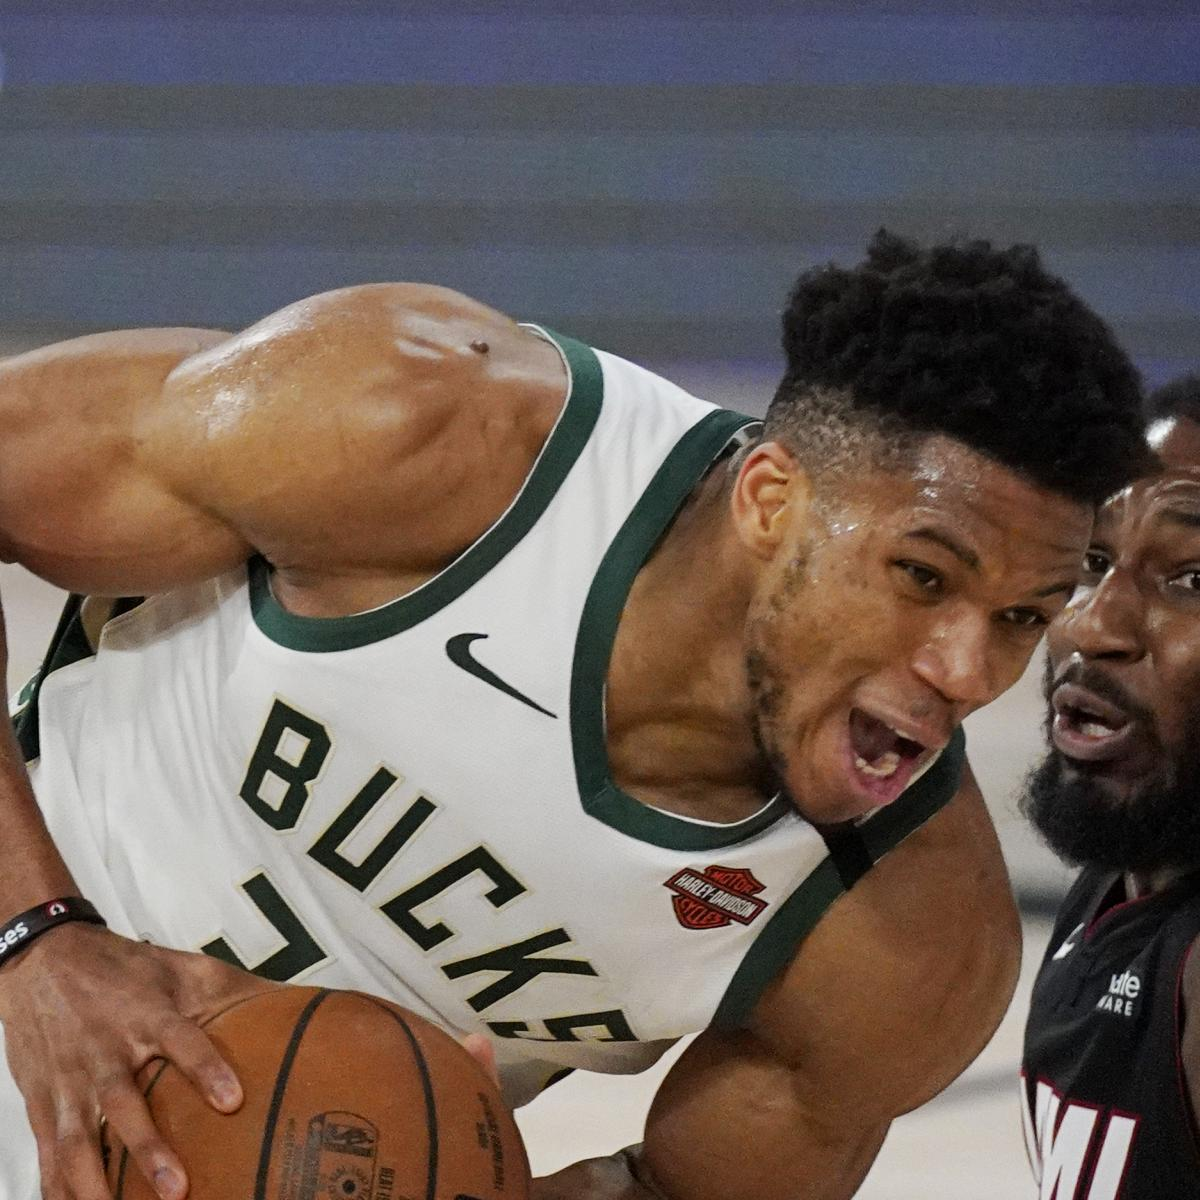 Giannis Antetokounmpo Rumors: Bucks Won't Trade Star Even If He Rejects Contract